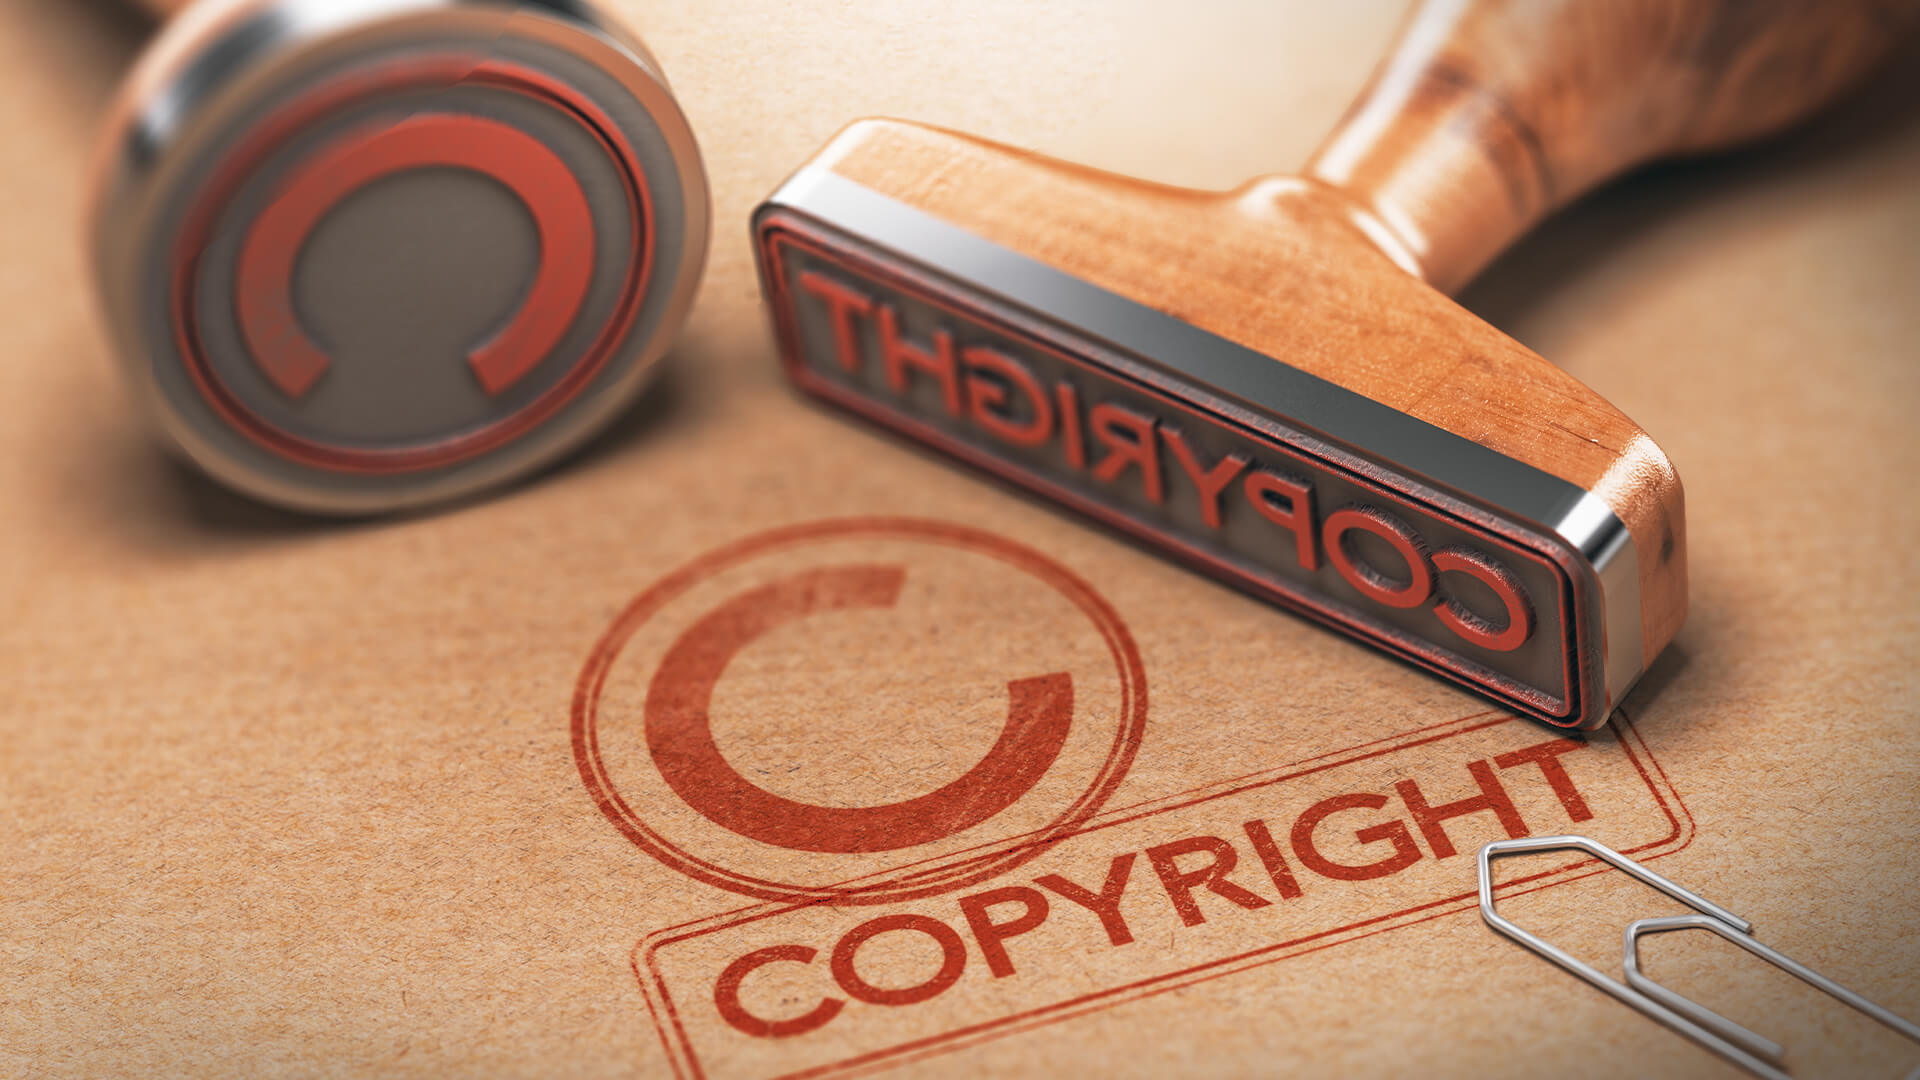 Top 4 Digital Rights Management Software That You Should Consider